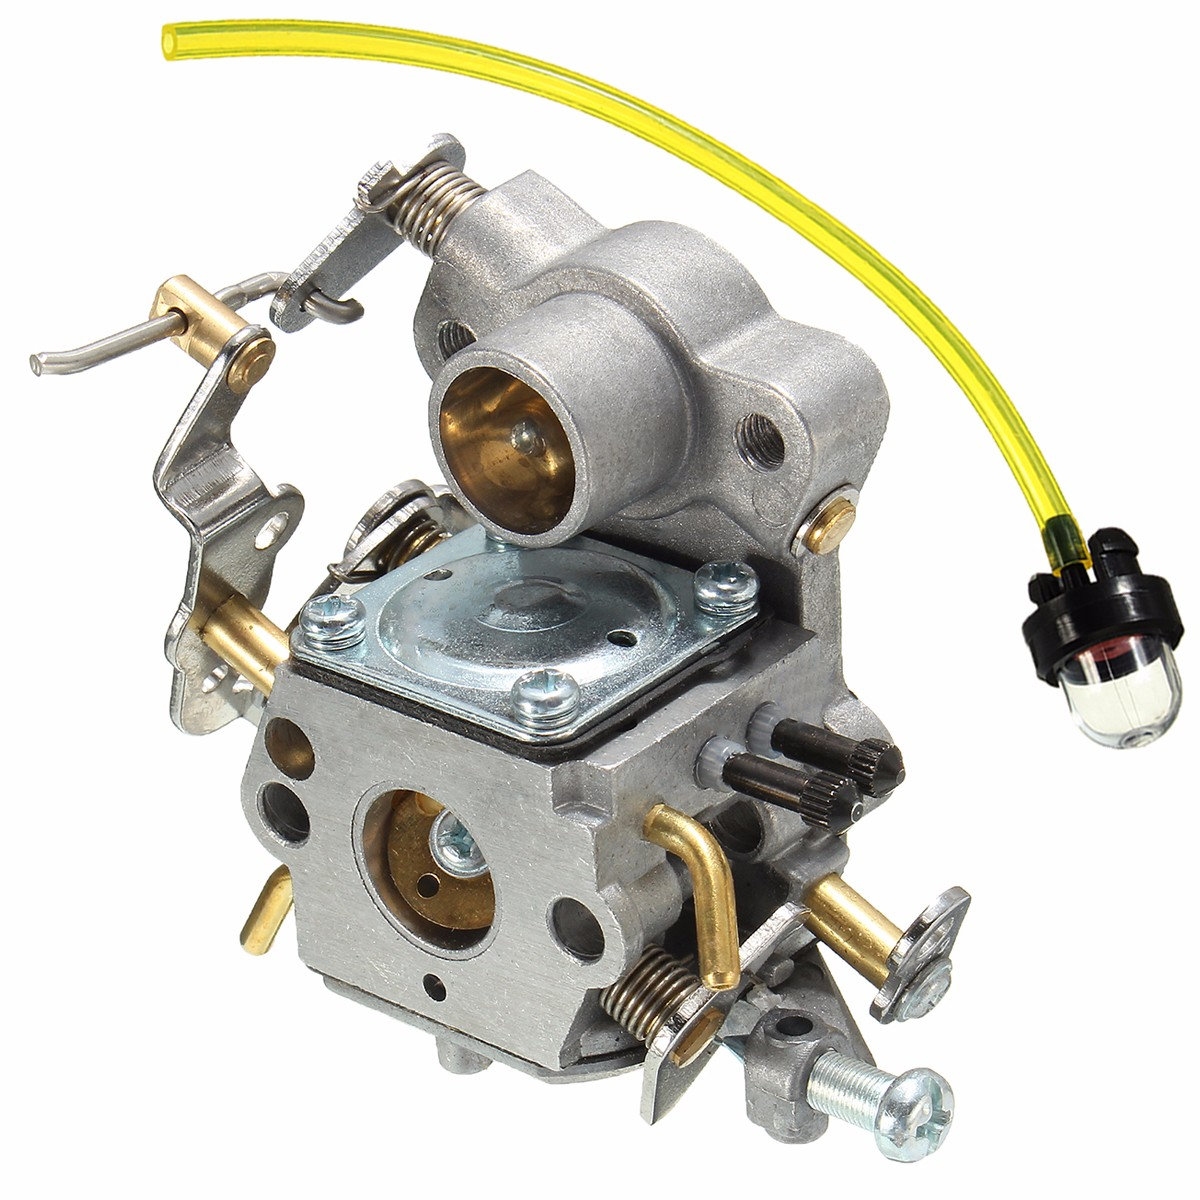 Carburetor Replacement With Primer Bulb For Poulan Craftsman Zama C1M-W26C 53003